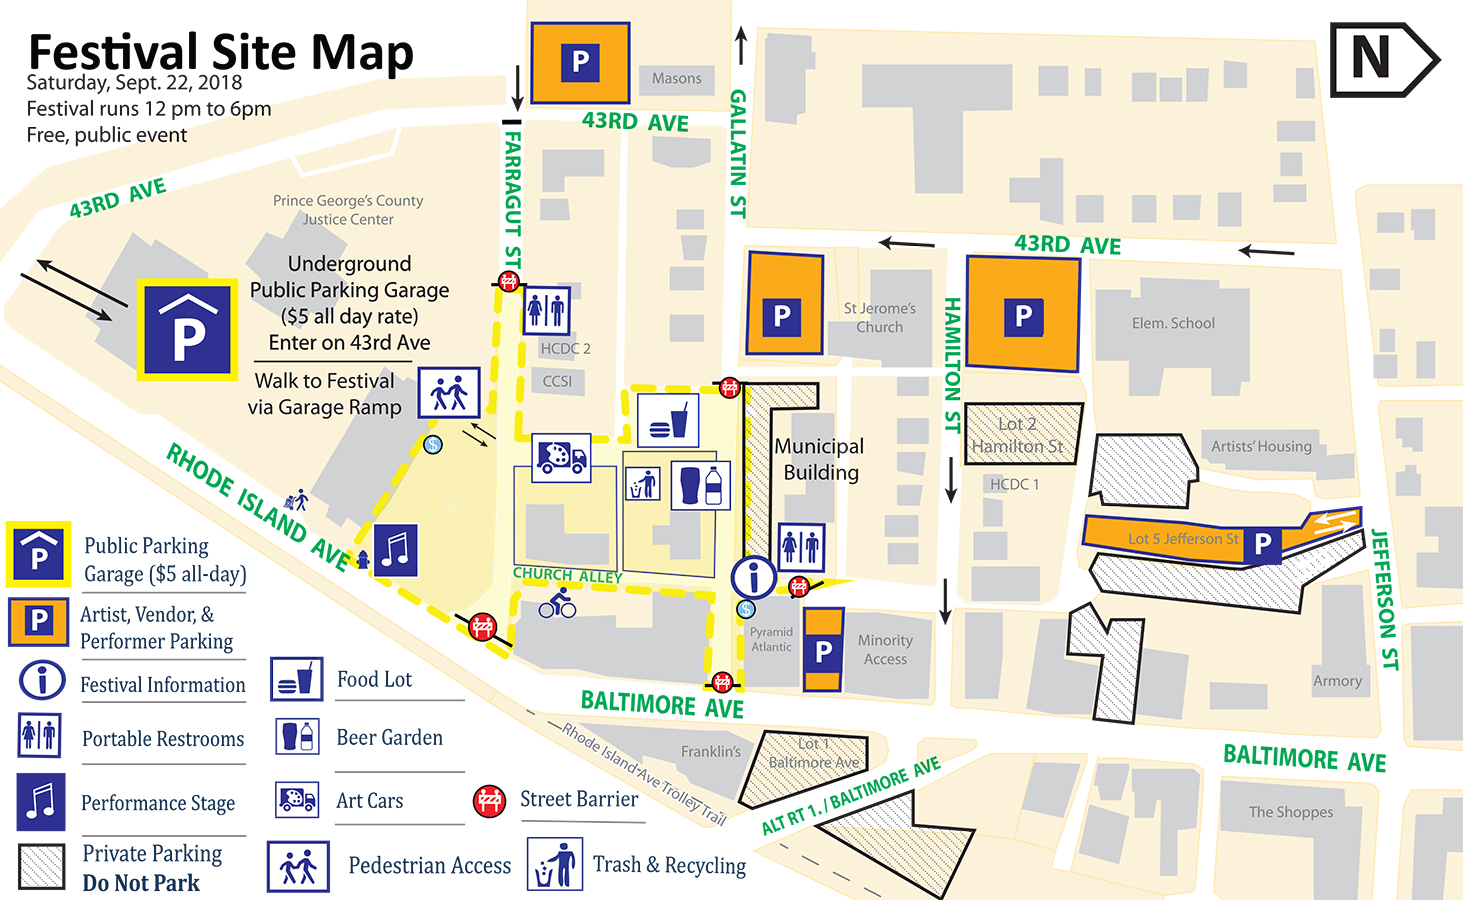 Parking & Directions - The Downtown Hyattsville Arts Festival